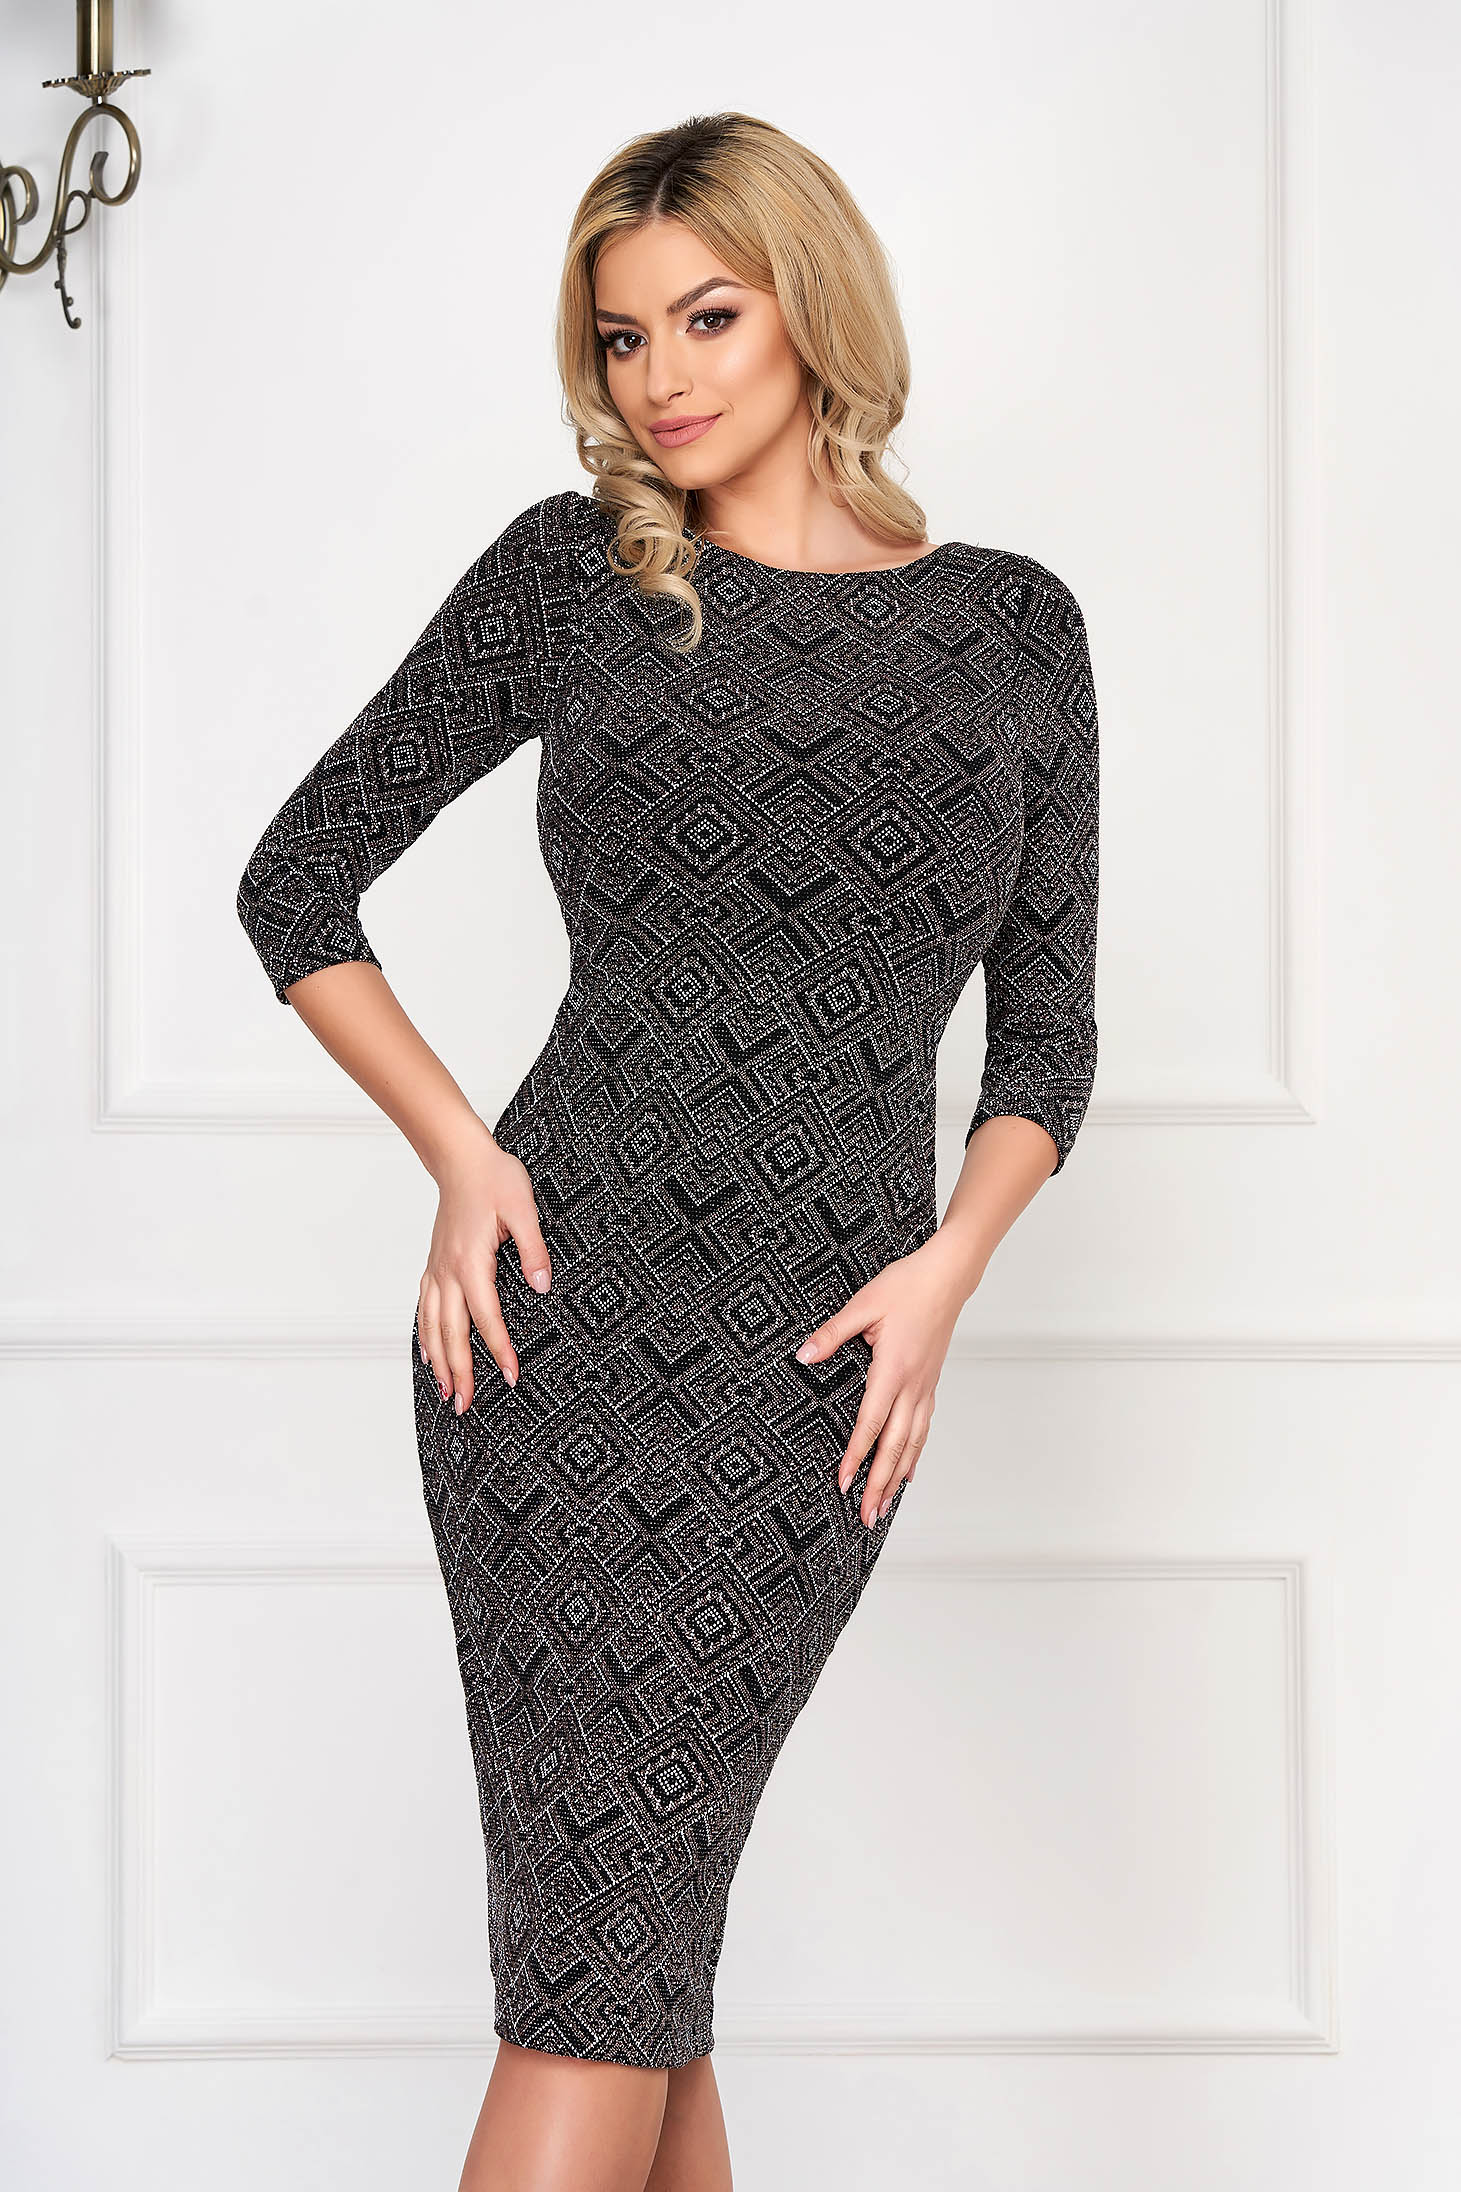 Dress StarShinerS black knitted fabric midi pencil 3/4 sleeve